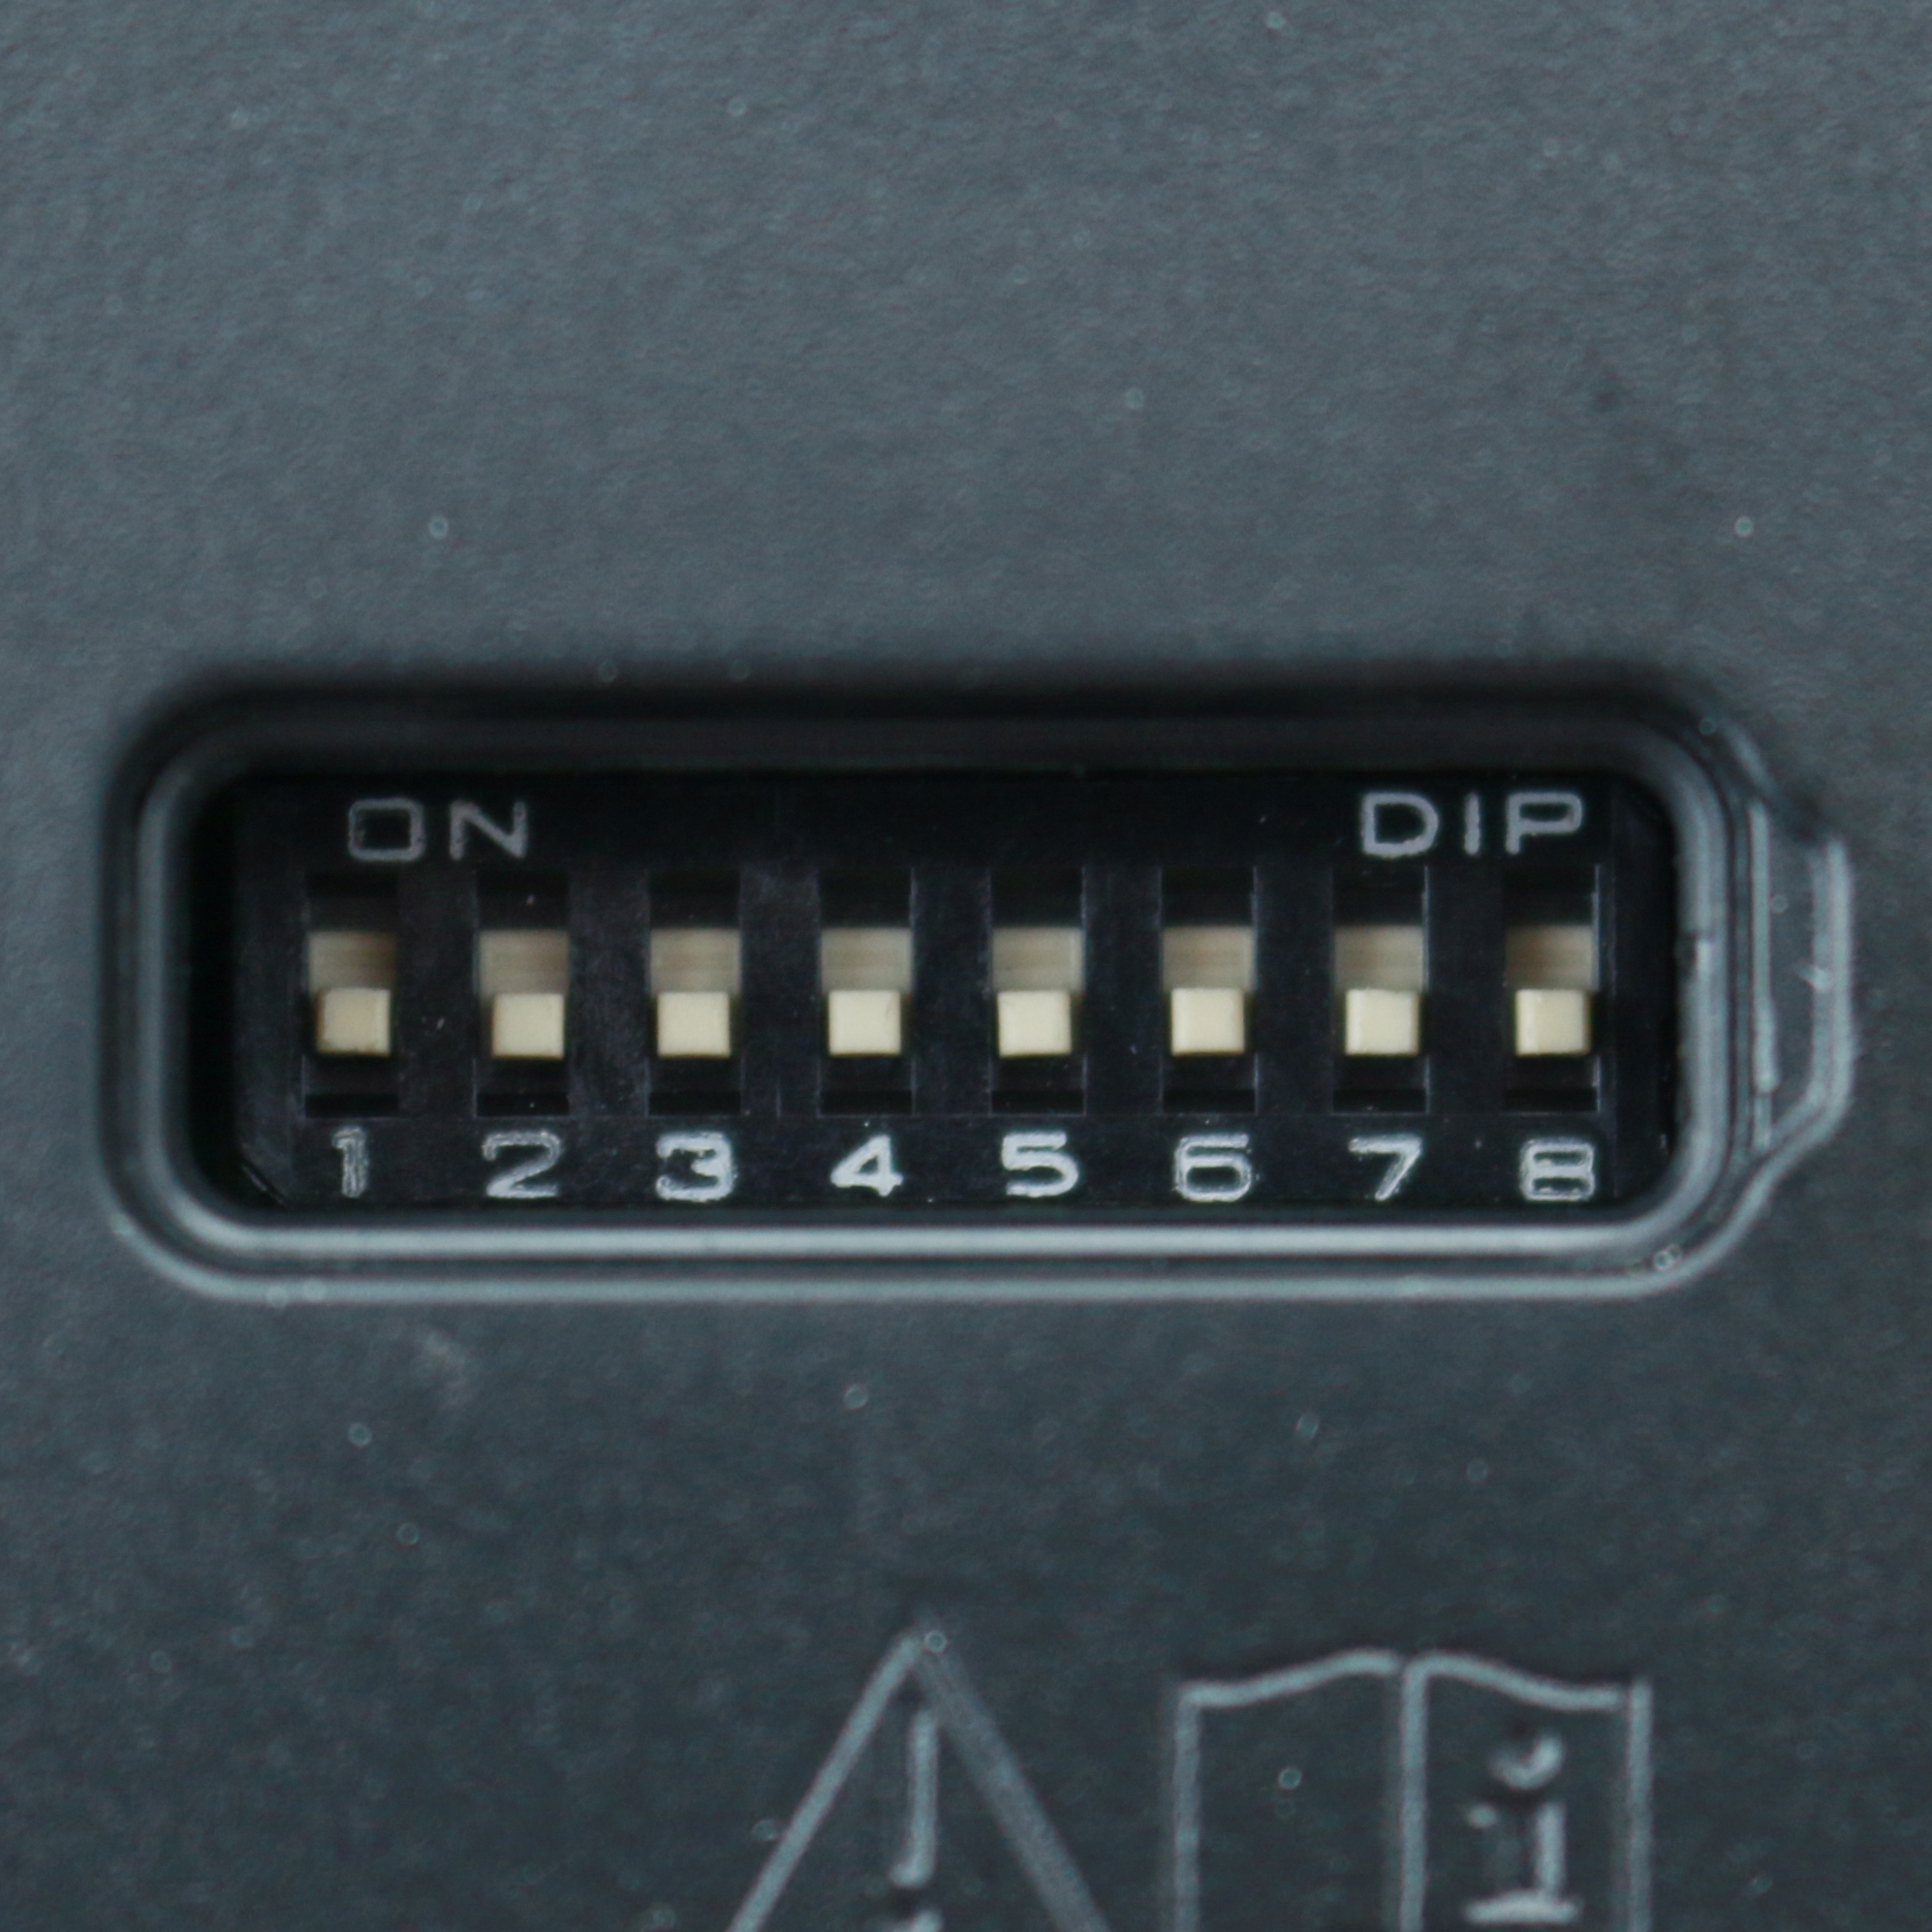 dip switches.jpg